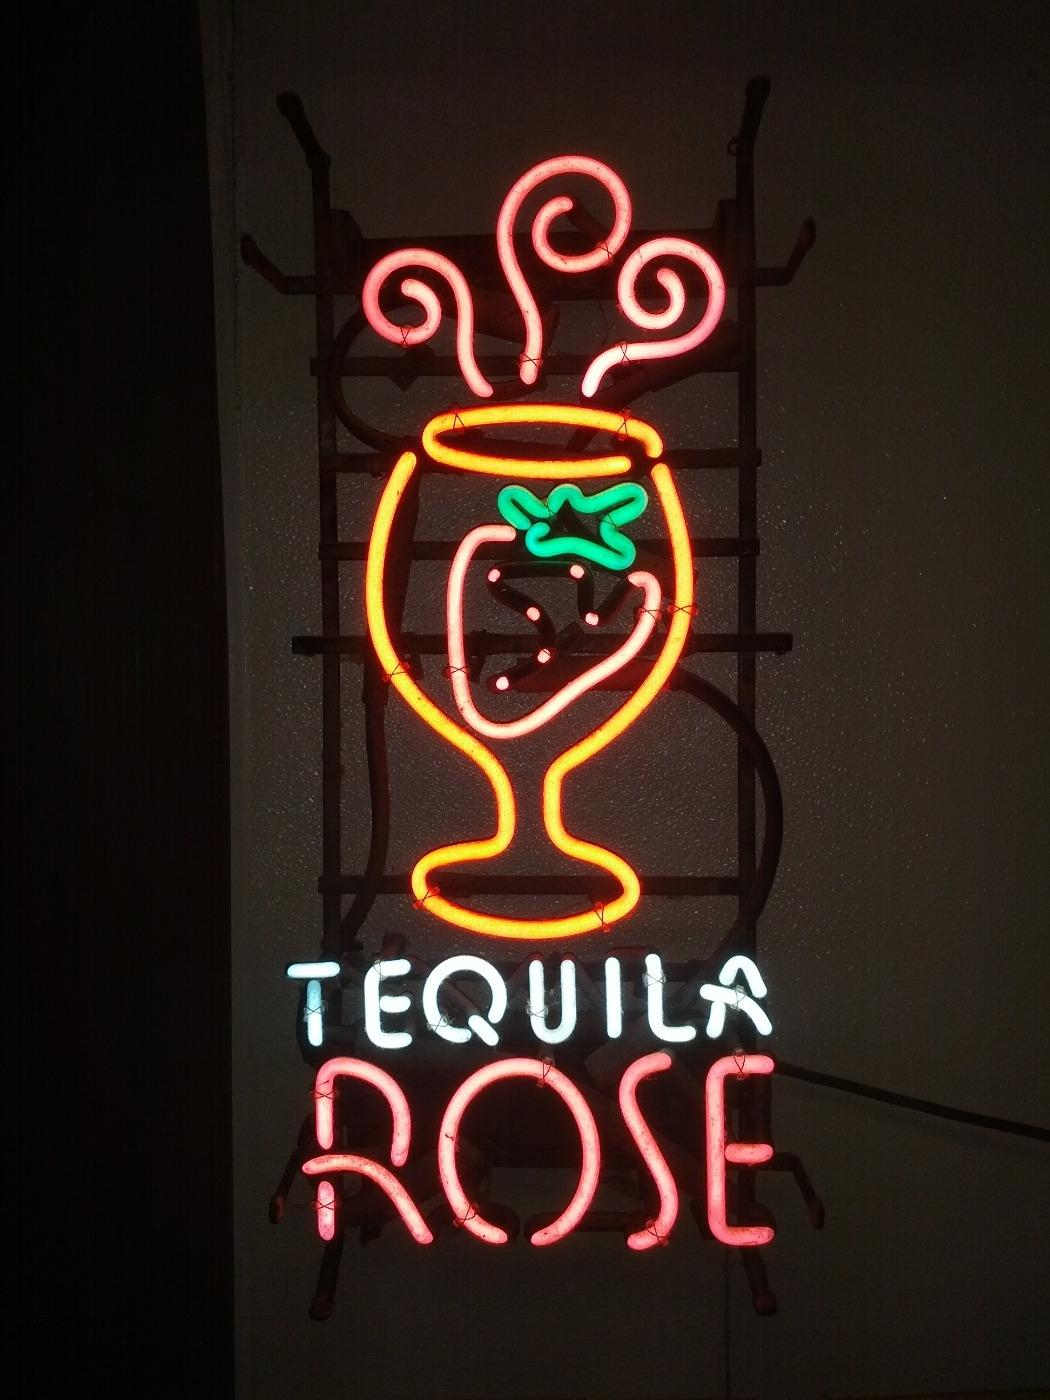 Best Tequila Rose Neon For Sale In Dekalb County Illinois For 2019